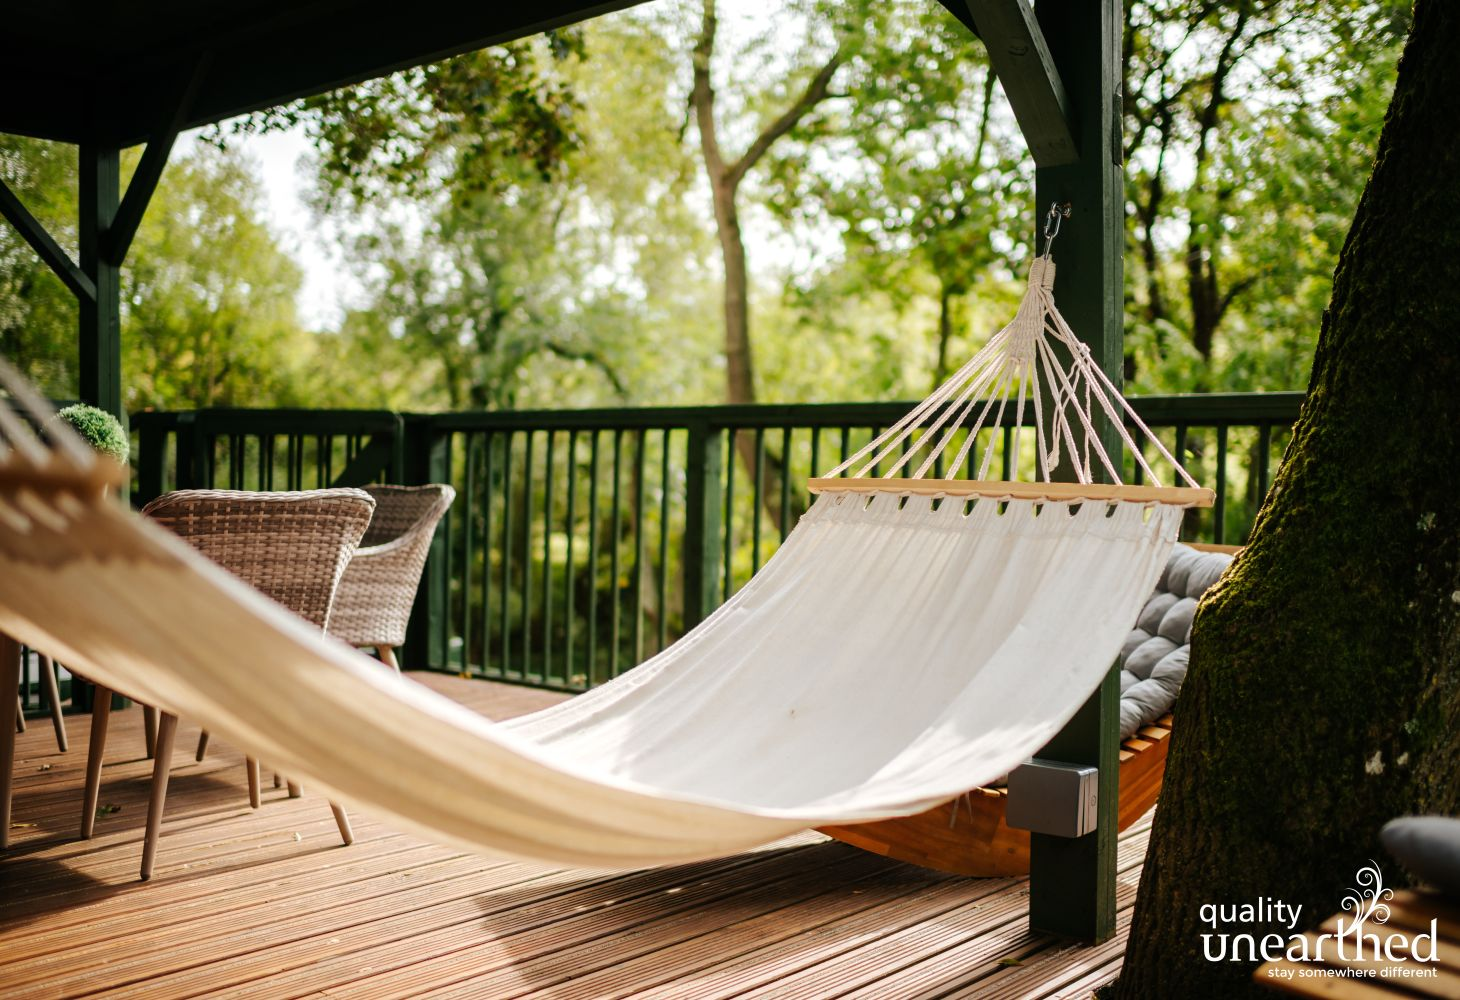 A hammock makes it impossible not to relax at this luxury treehouse set in the Cotswold woods